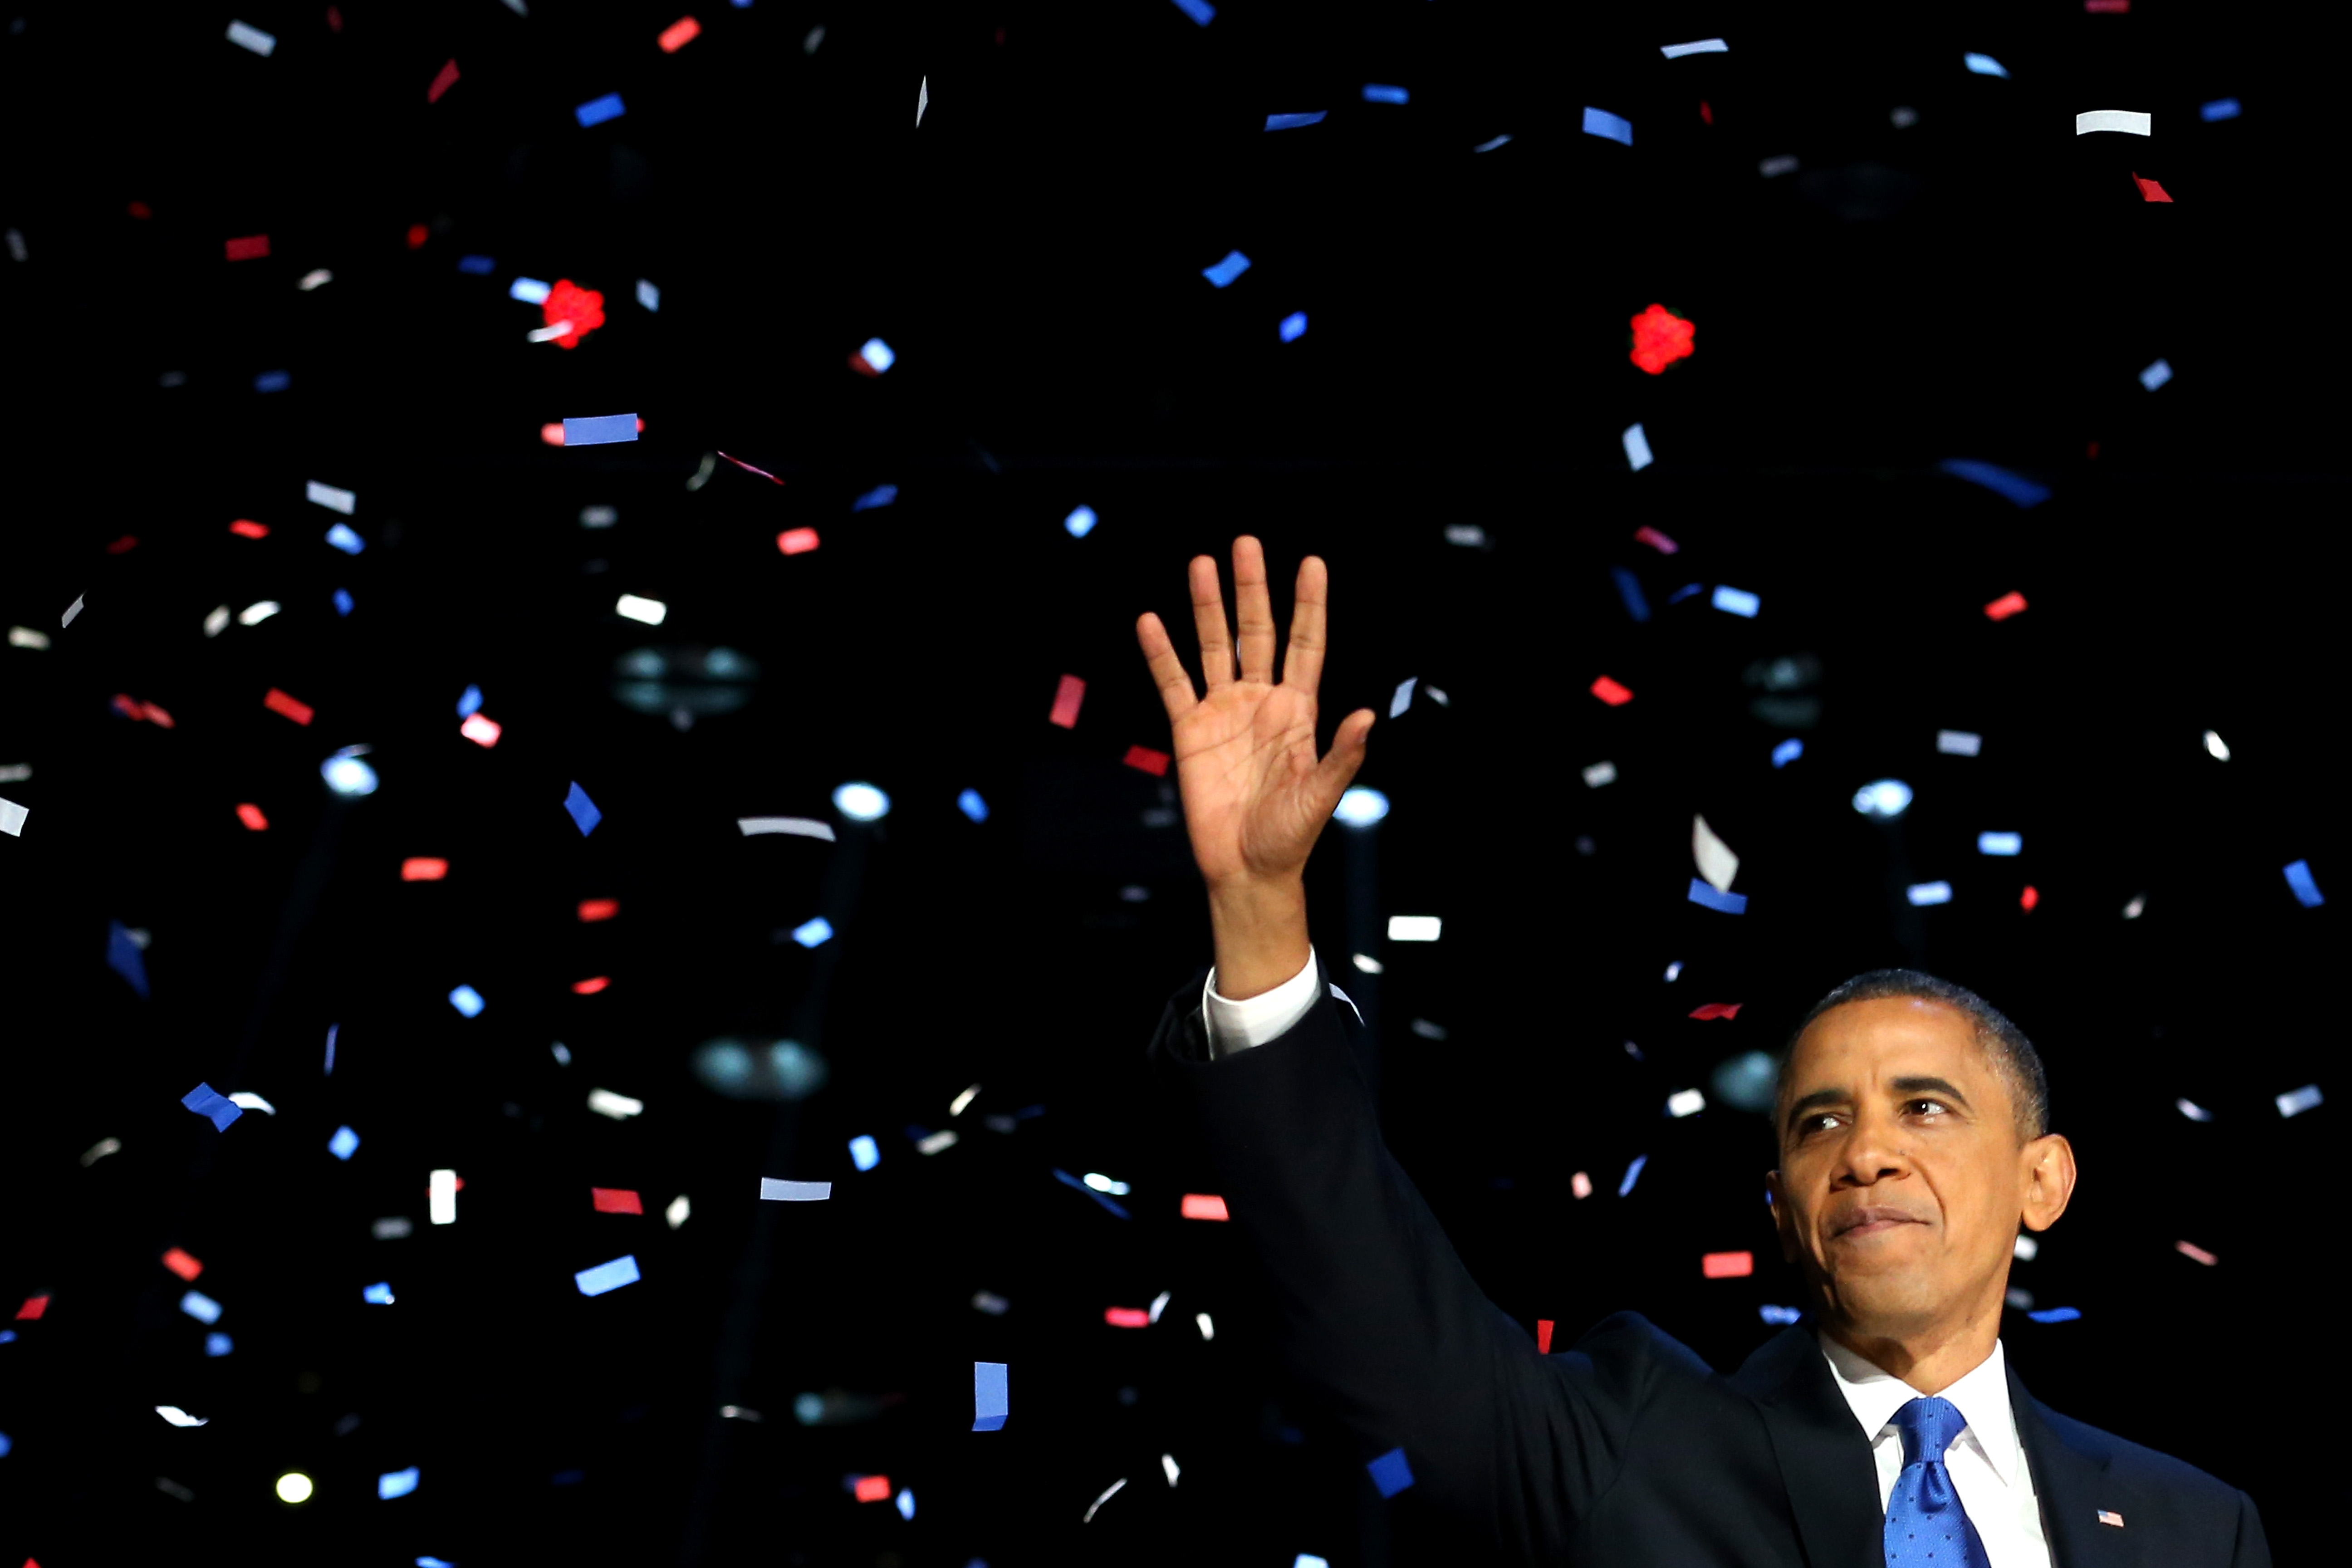 U.S. President Barack Obama waves to supporters after his victory speech at McCormick Place on election night November 6, 2012 in Chicago, Illinois.